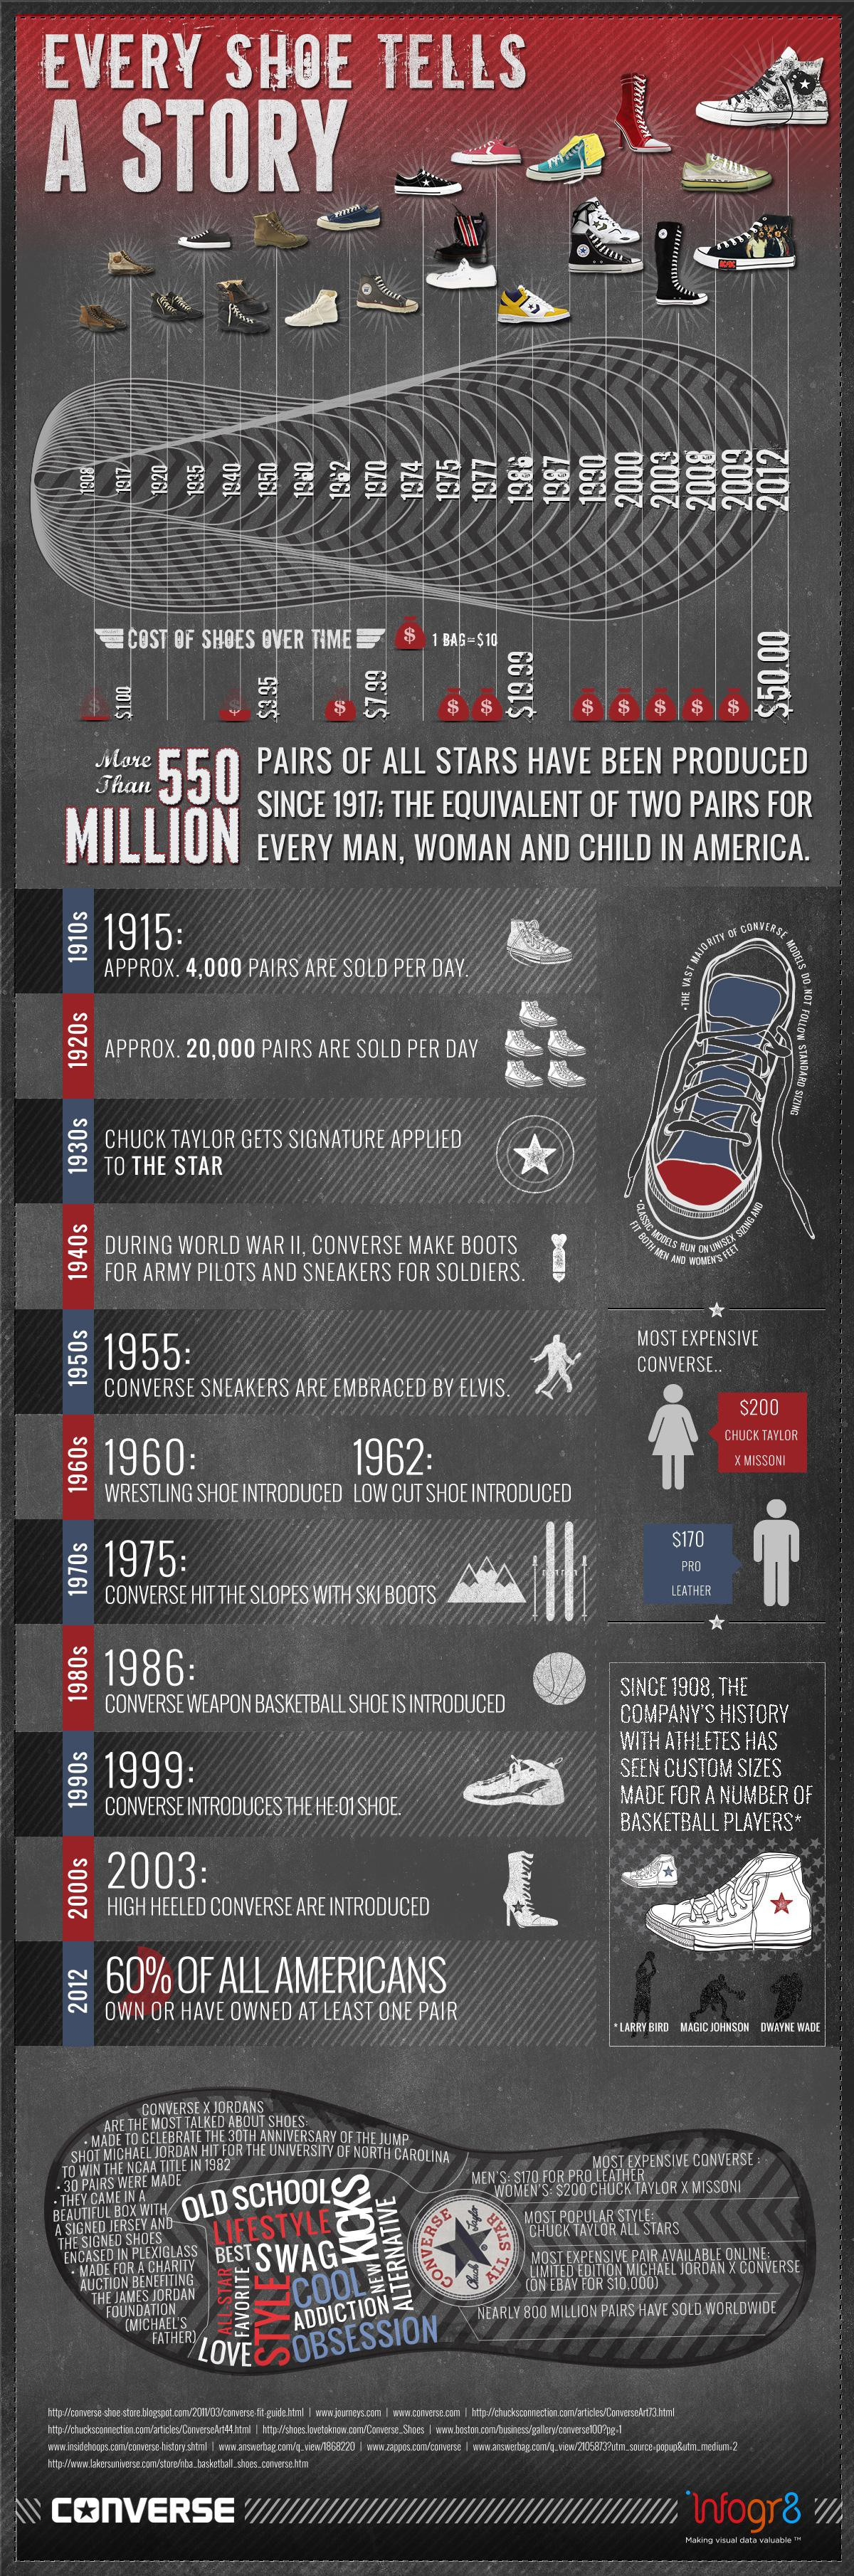 The History of Converse infographic